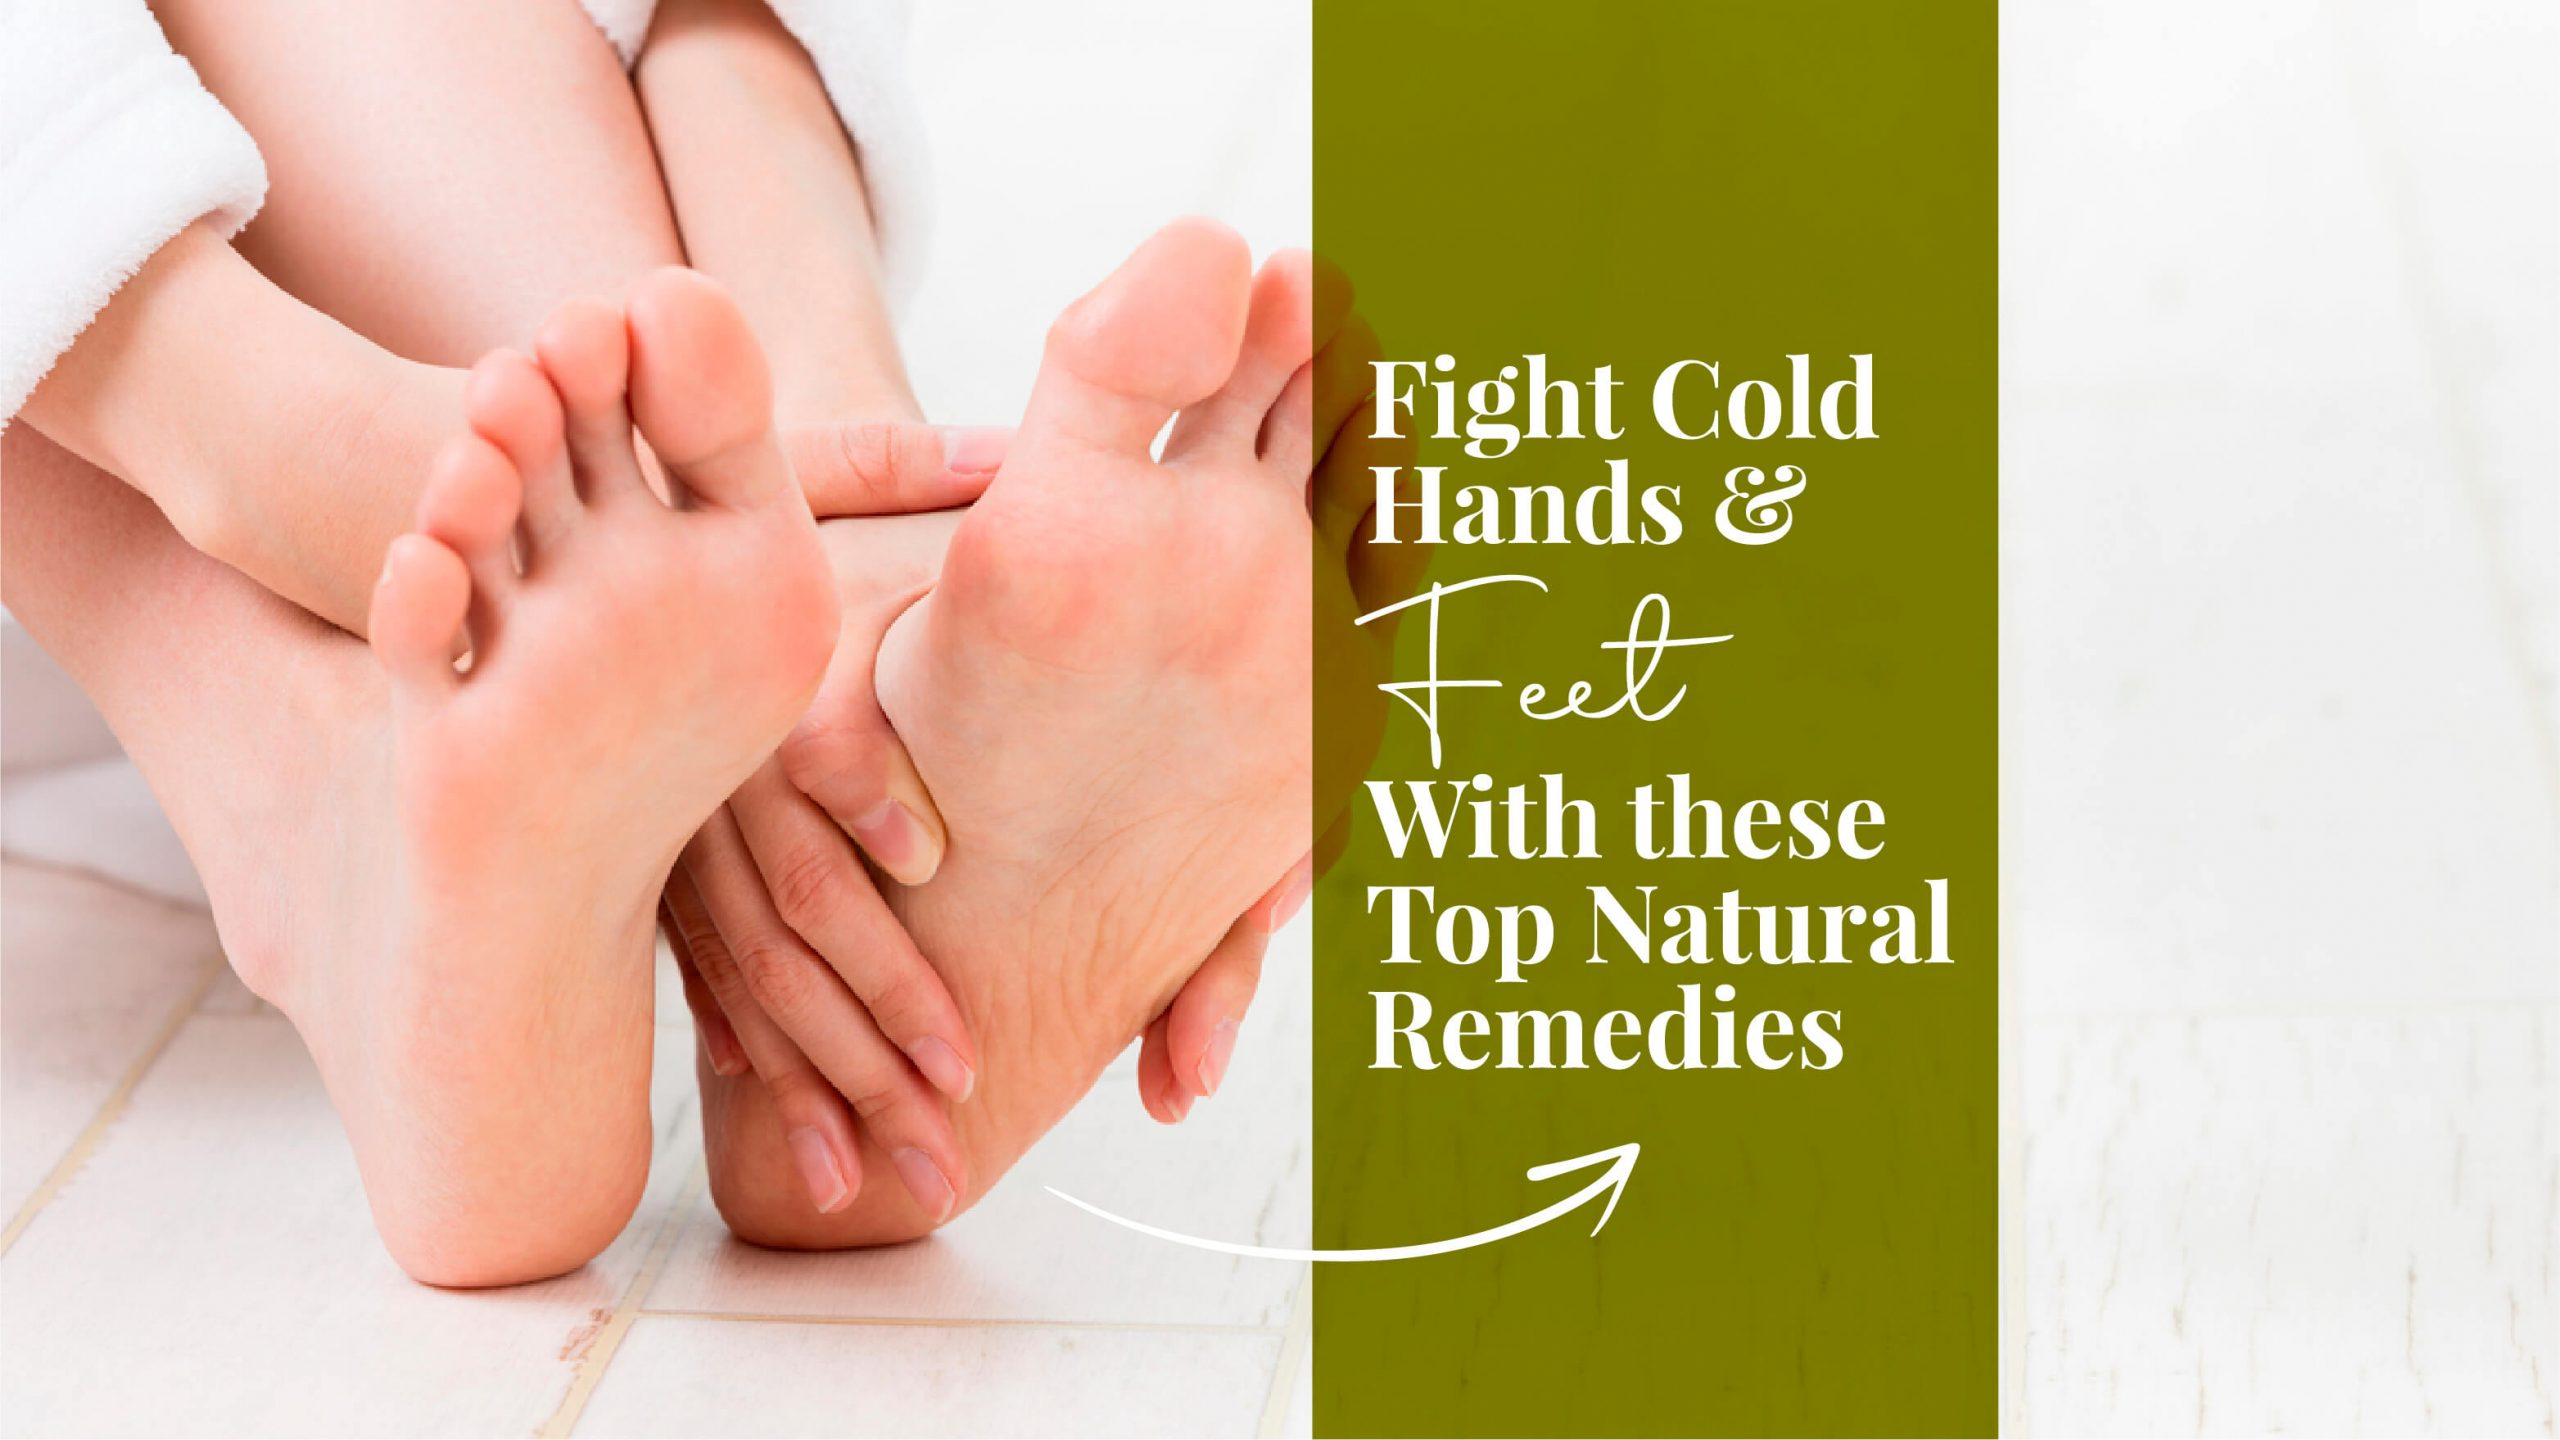 Fight Cold Hands & Feet With these Top Natural Remedies